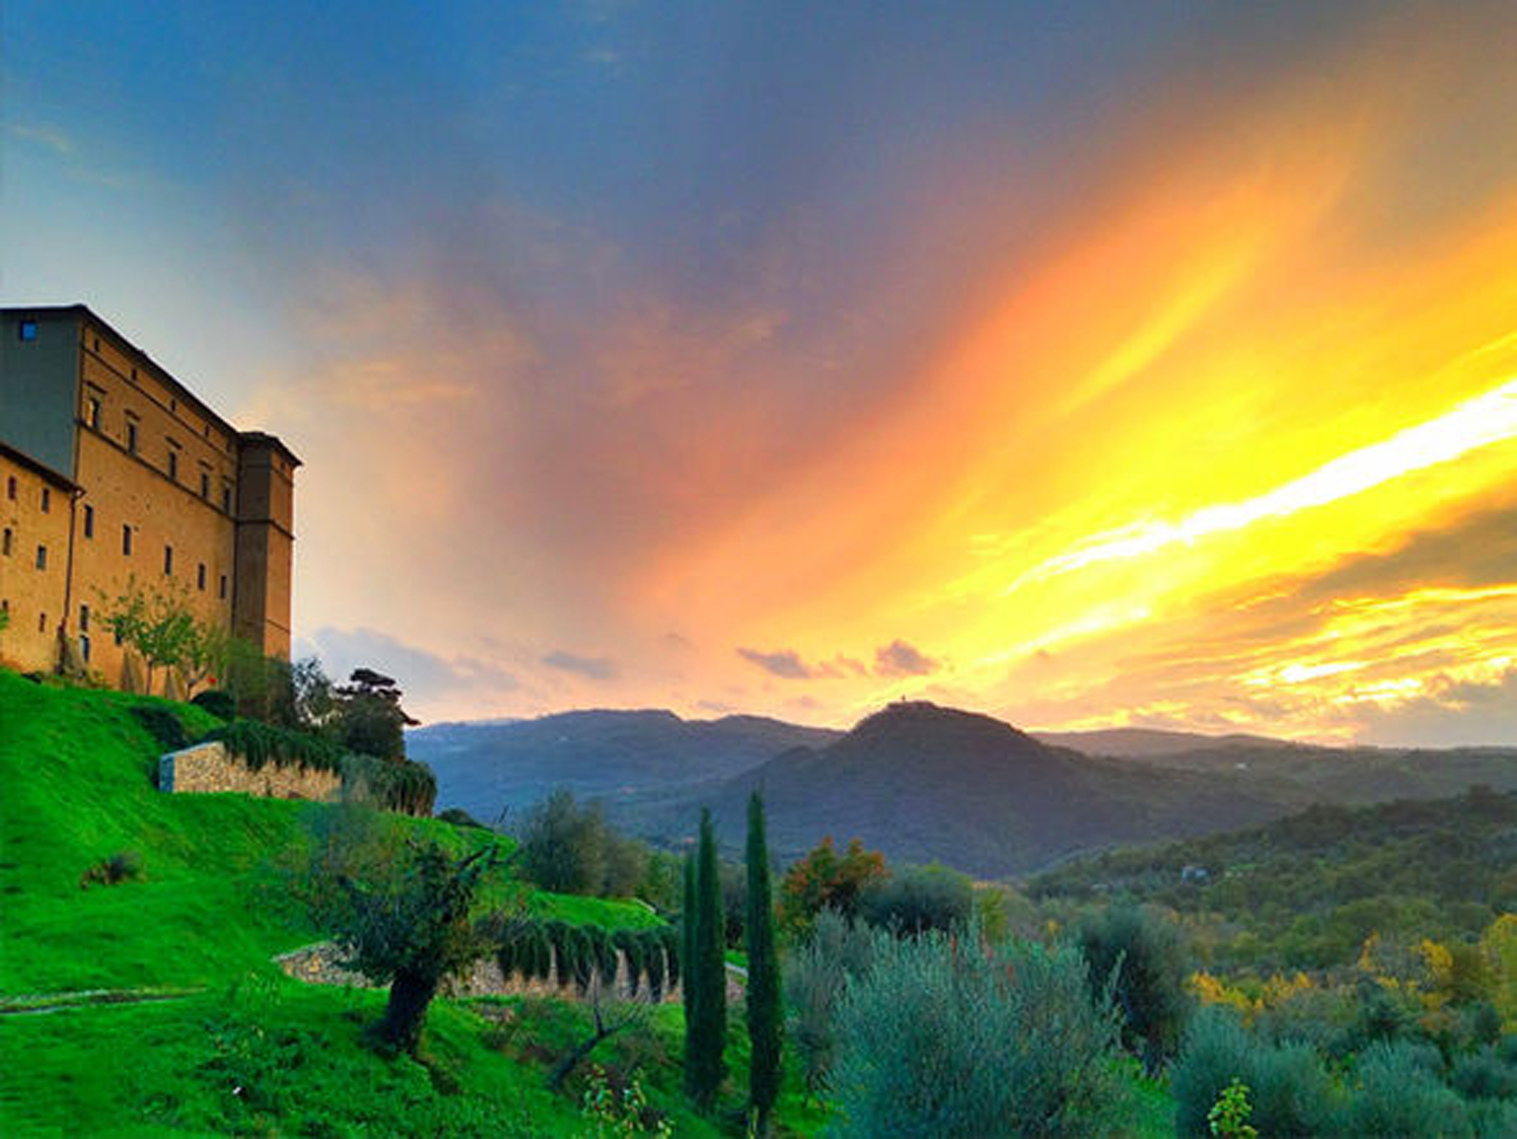 Castello  di Potentino. This  splendid ancient castle, built on an Etruscan  site, lies in a secret  valley nestled in one of the last undiscovered corners of Tuscany.